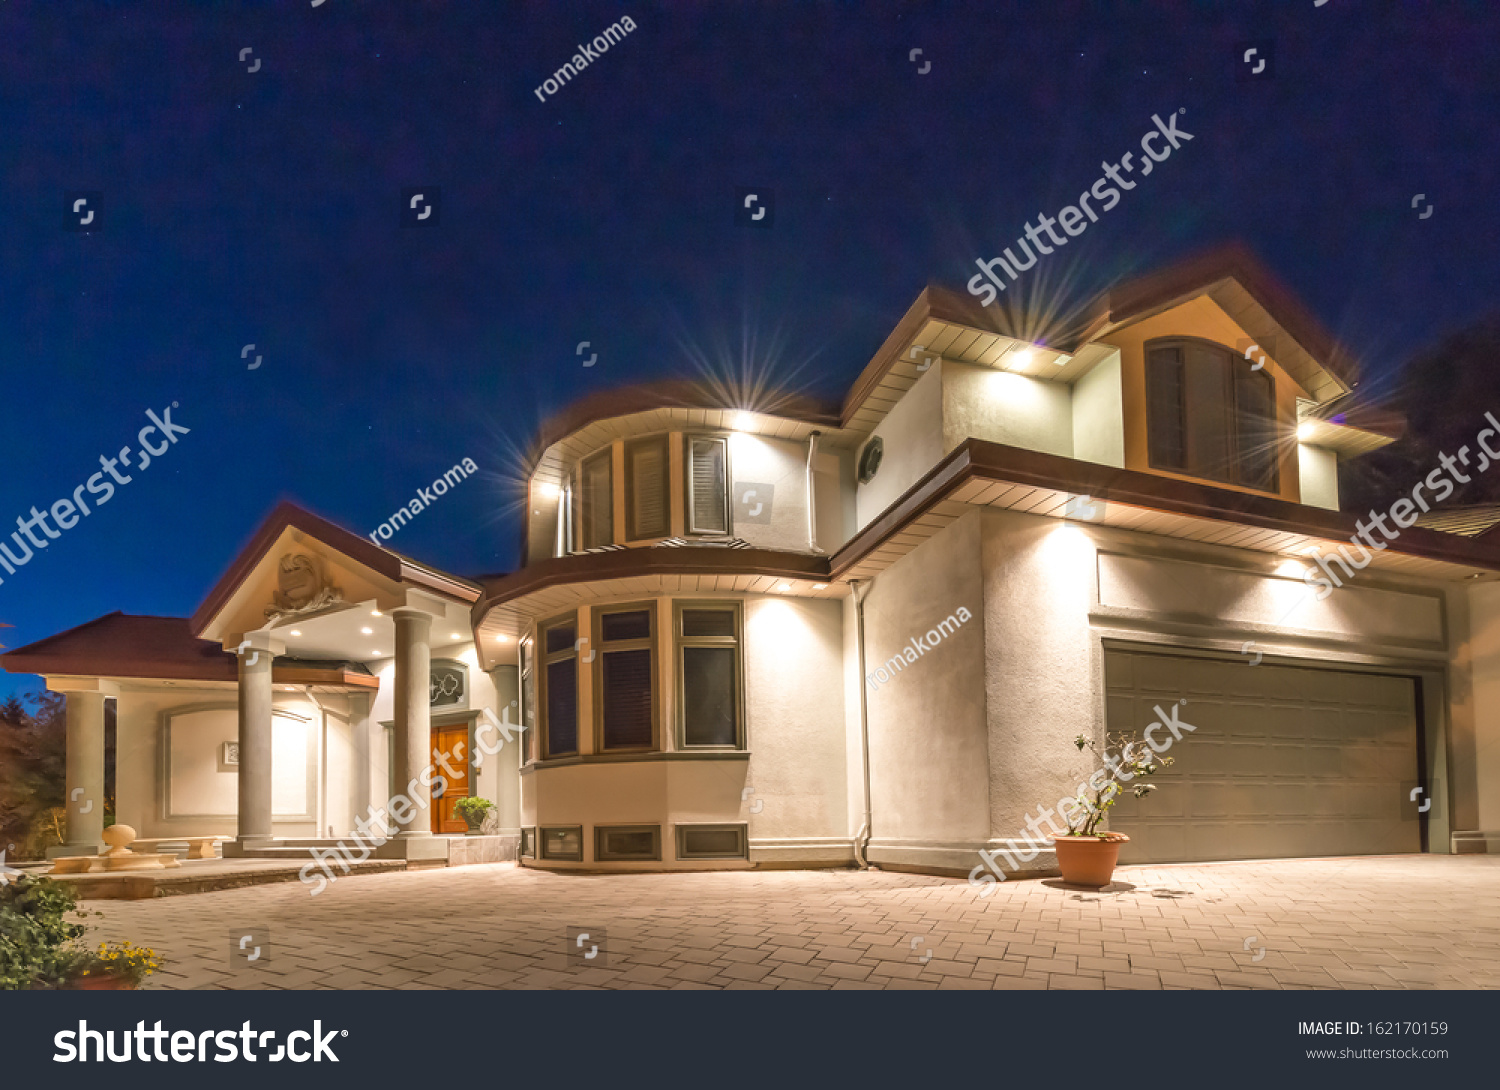 Big Luxury House At Night Disk Sunset Sunrise Time In Suburbs Of